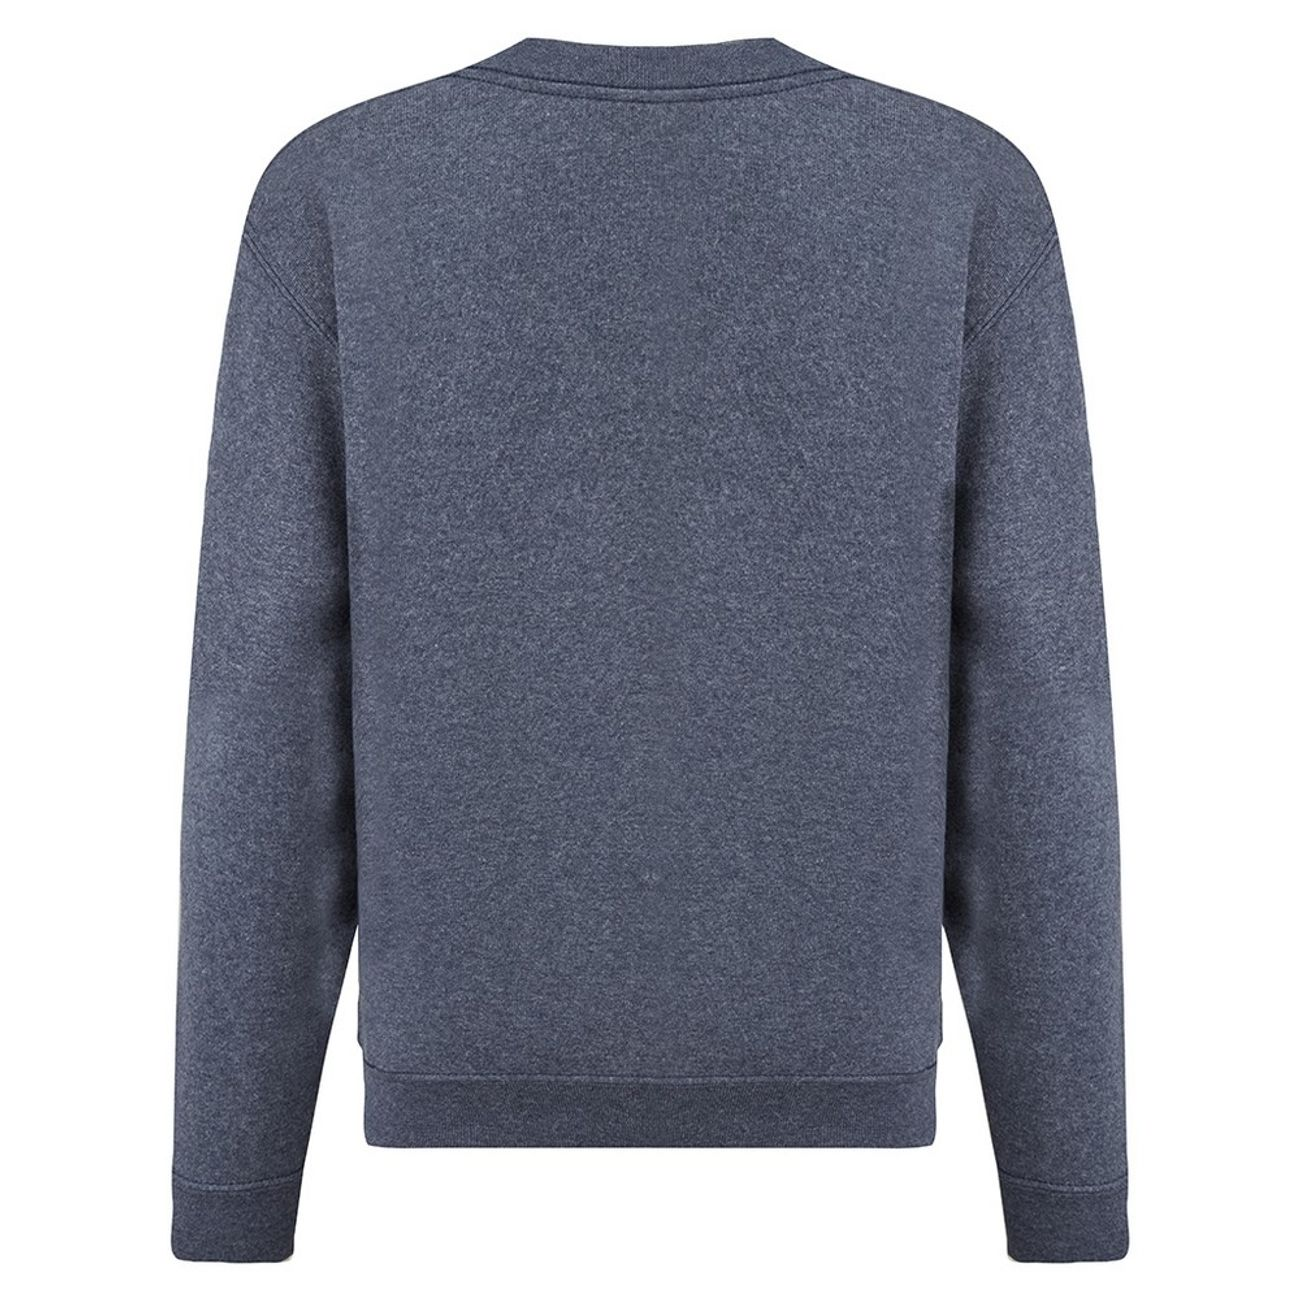 Mode- Lifestyle fille FRUIT OF THE LOOM Sweat CLASSIC   Unisexe